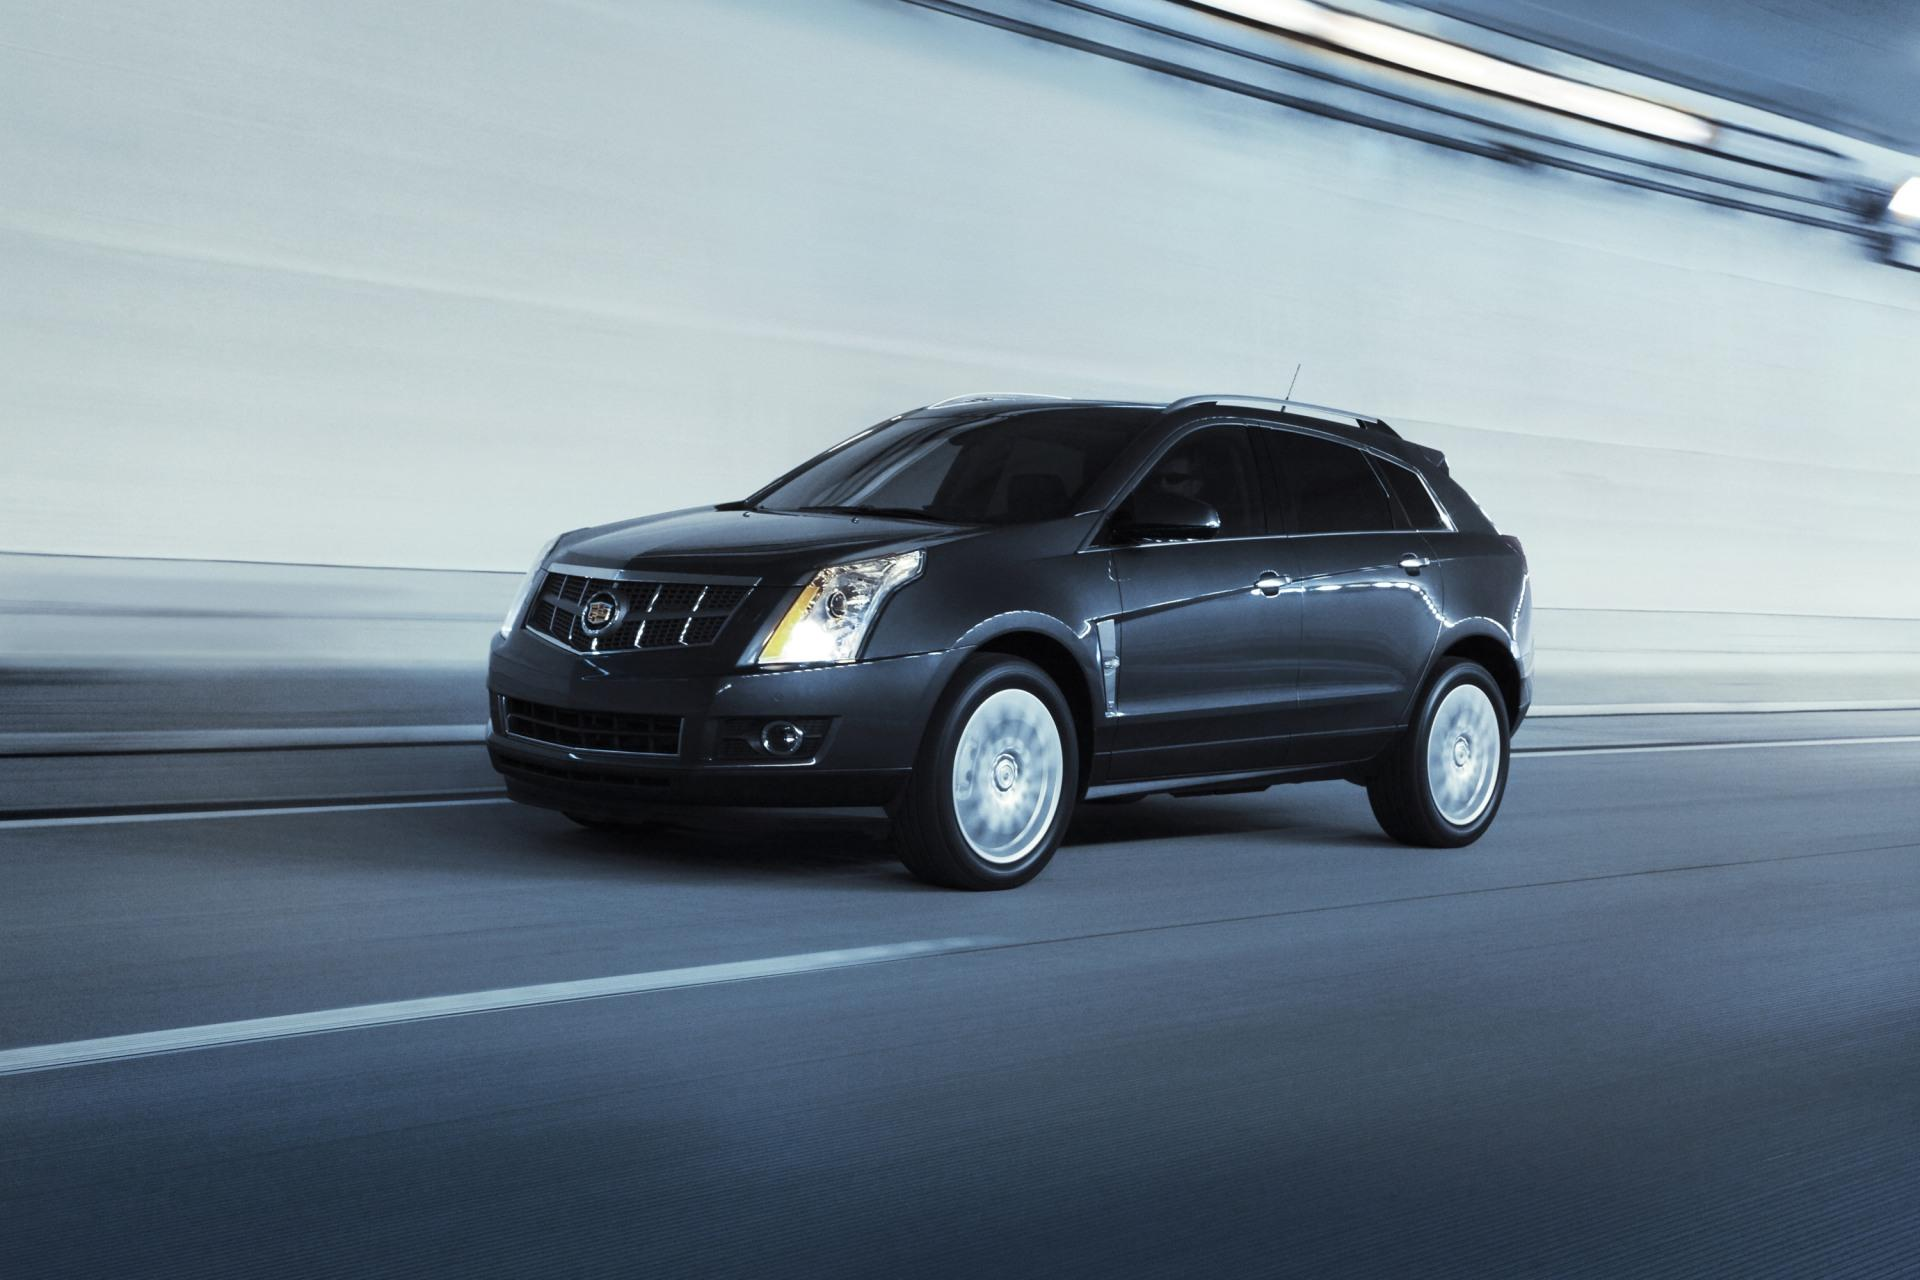 home delivery buy all cadillac used srxs for sale online vroom years catalog srx